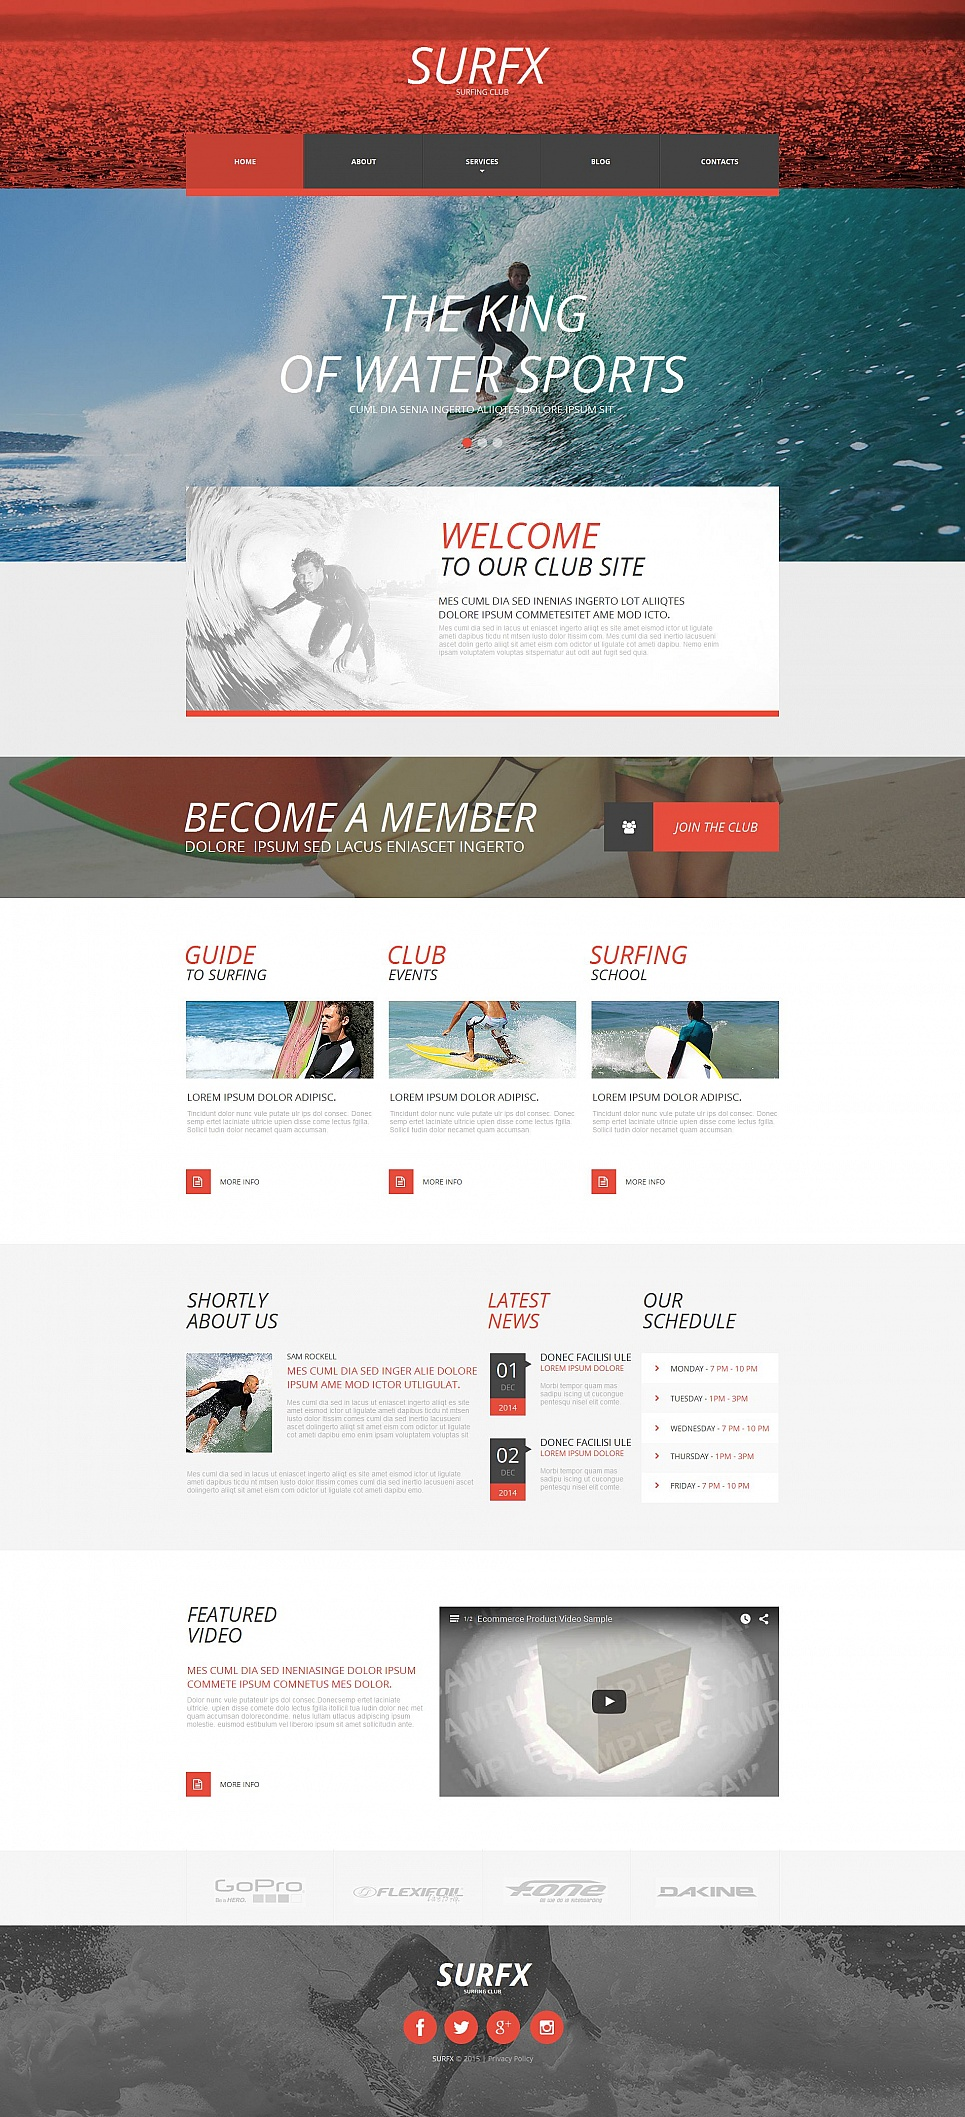 Surfing site template